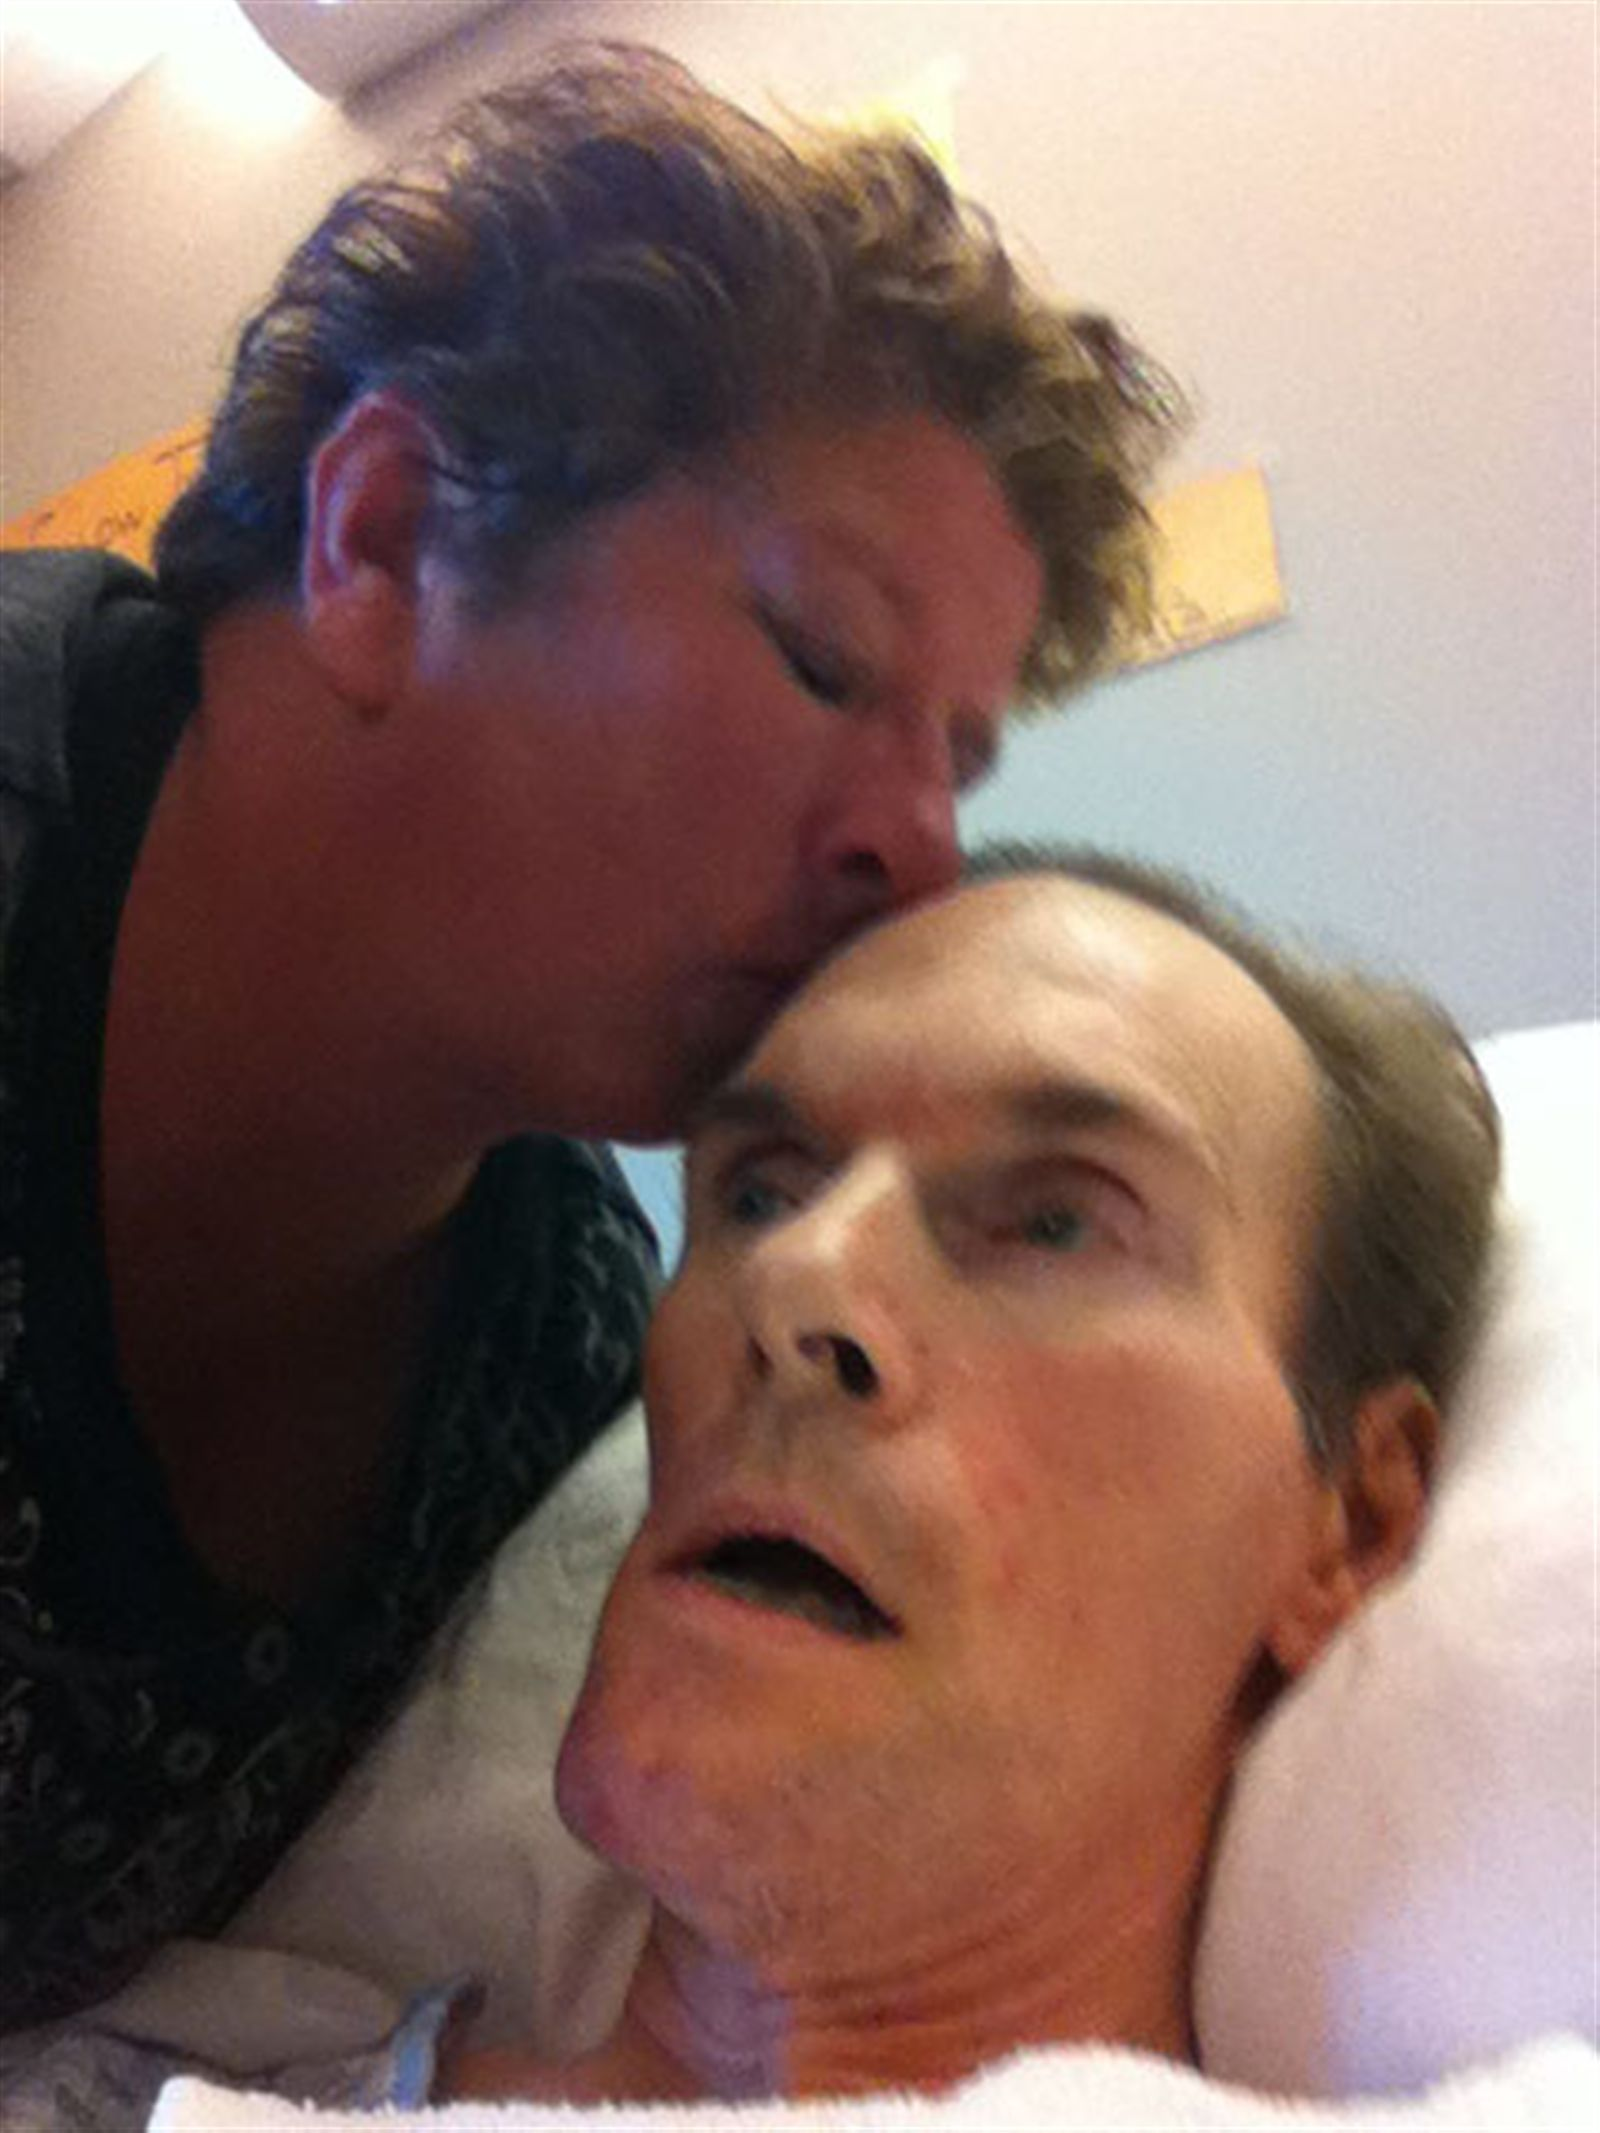 Patricia Myers kisses her bedridden husband, Larry, in his room at HighPointe on Michigan nursing home in a photo taken before Myers died. Myers, of Orchard Park, died Jan. 9, 2014, from Huntington's chorea, the disease that had robbed him of mobility and left him totally dependent on the nursing home staff.